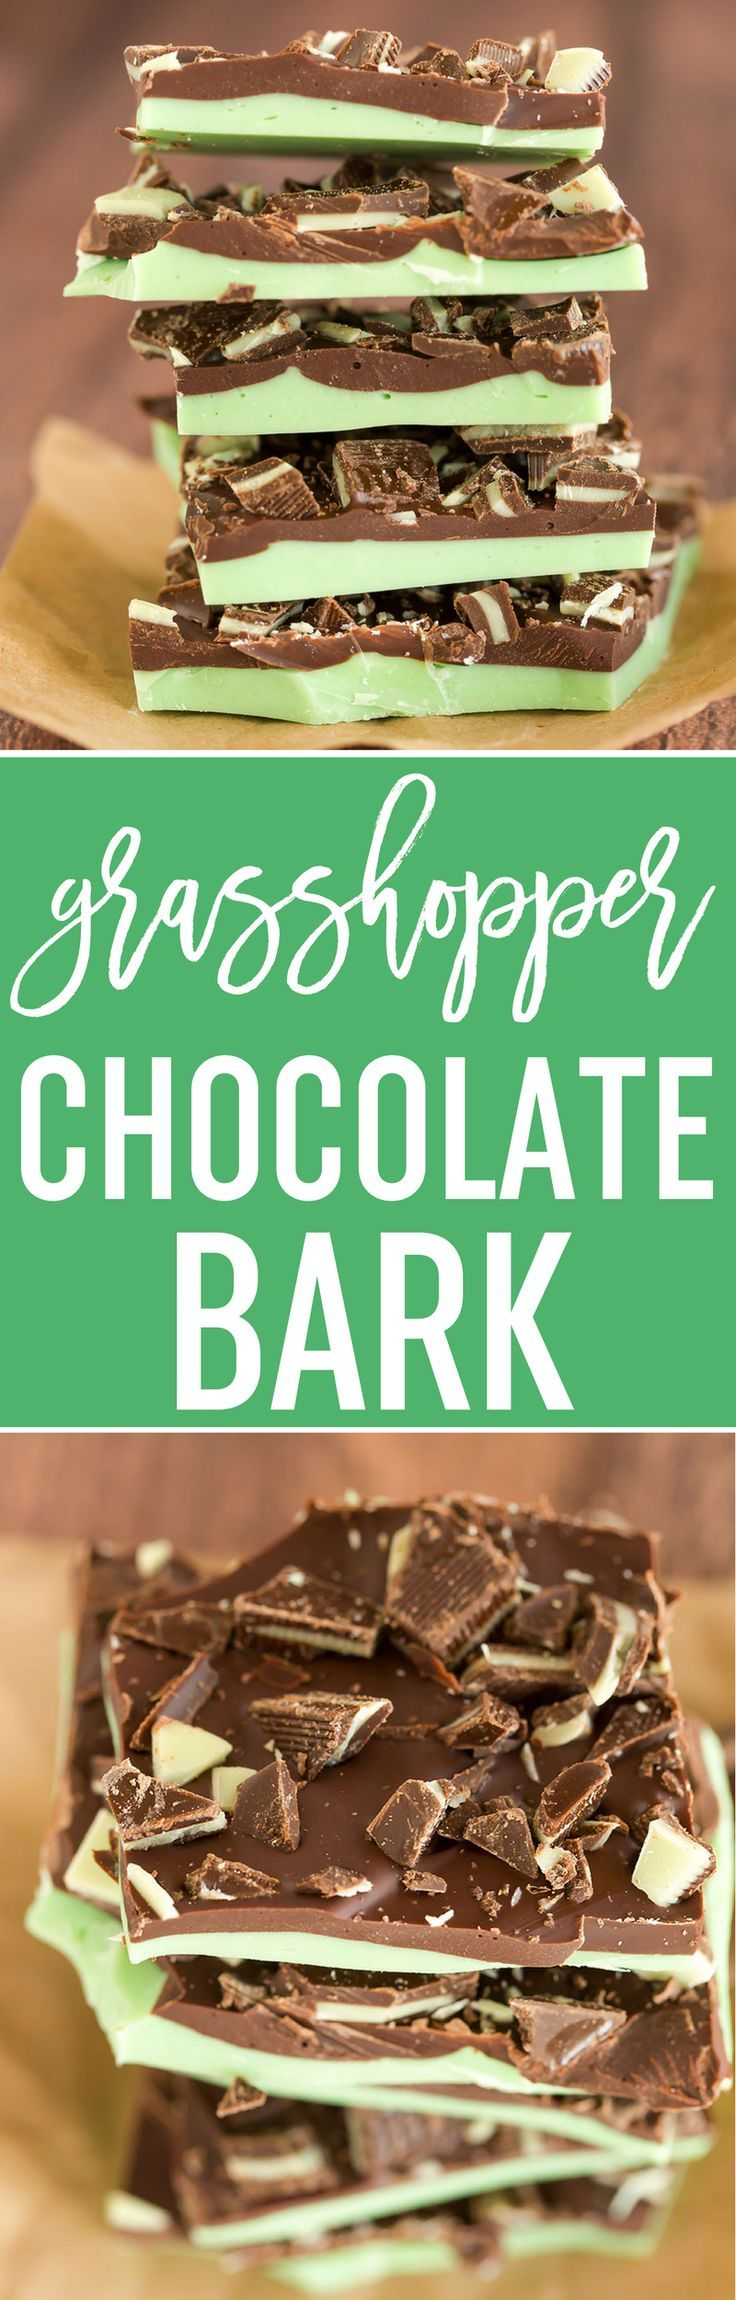 Grasshopper Chocolate Bark :: It combines the chocolate and mint flavors from the popular cocktail, minus the alcohol. Make it for your St. Patrick's Day party! via @browneyedbaker